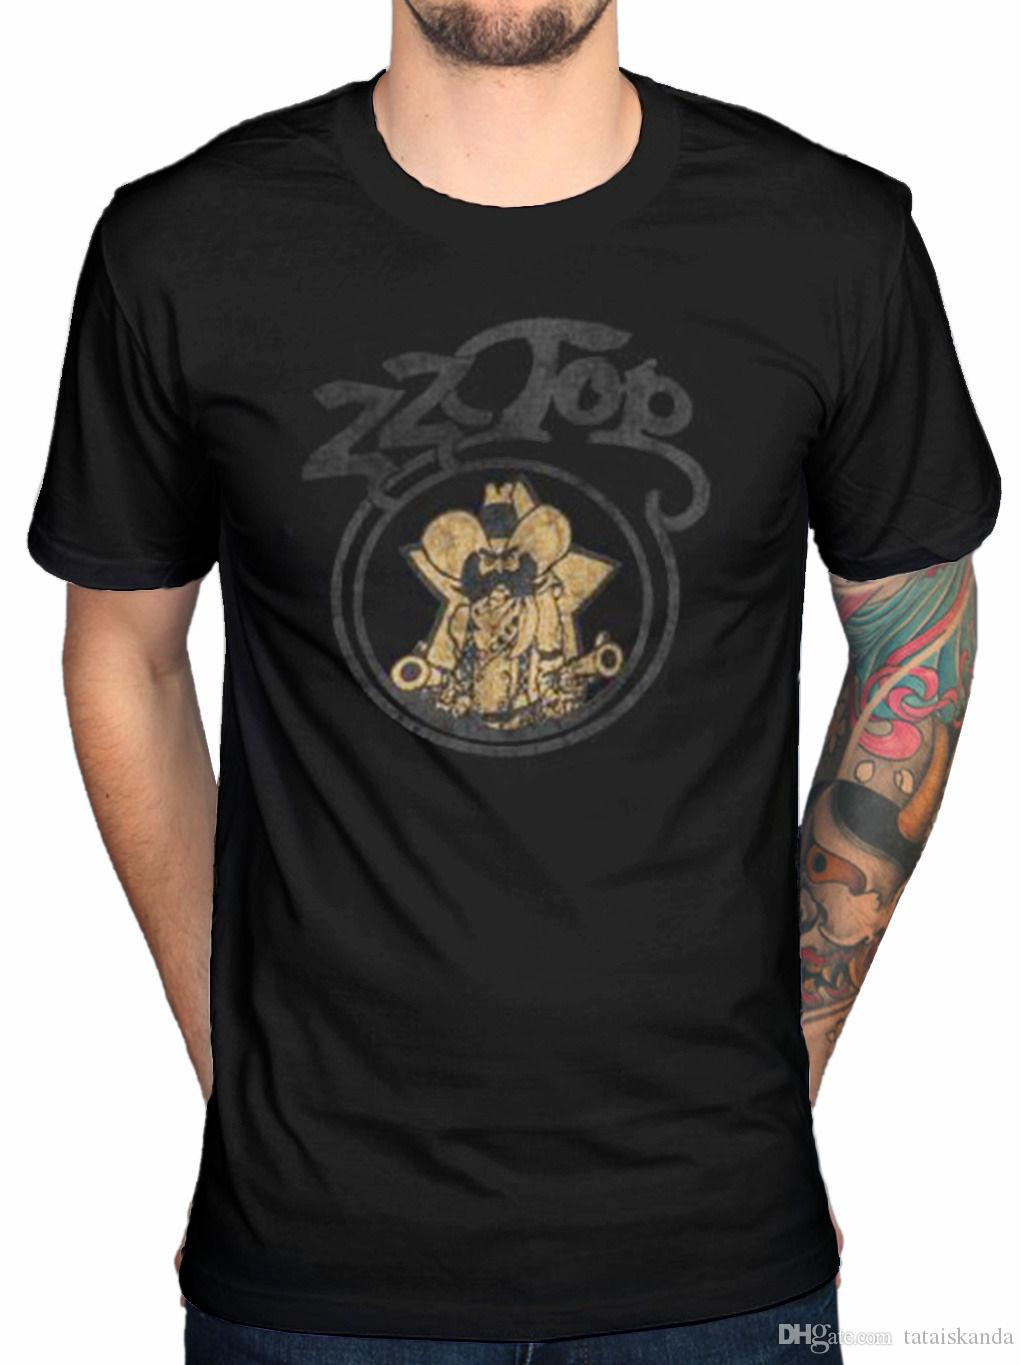 Get Paid For T Shirt Designs   Official Zz Top Outlaw Village T Shirt Texicali La Futura I Gotsta